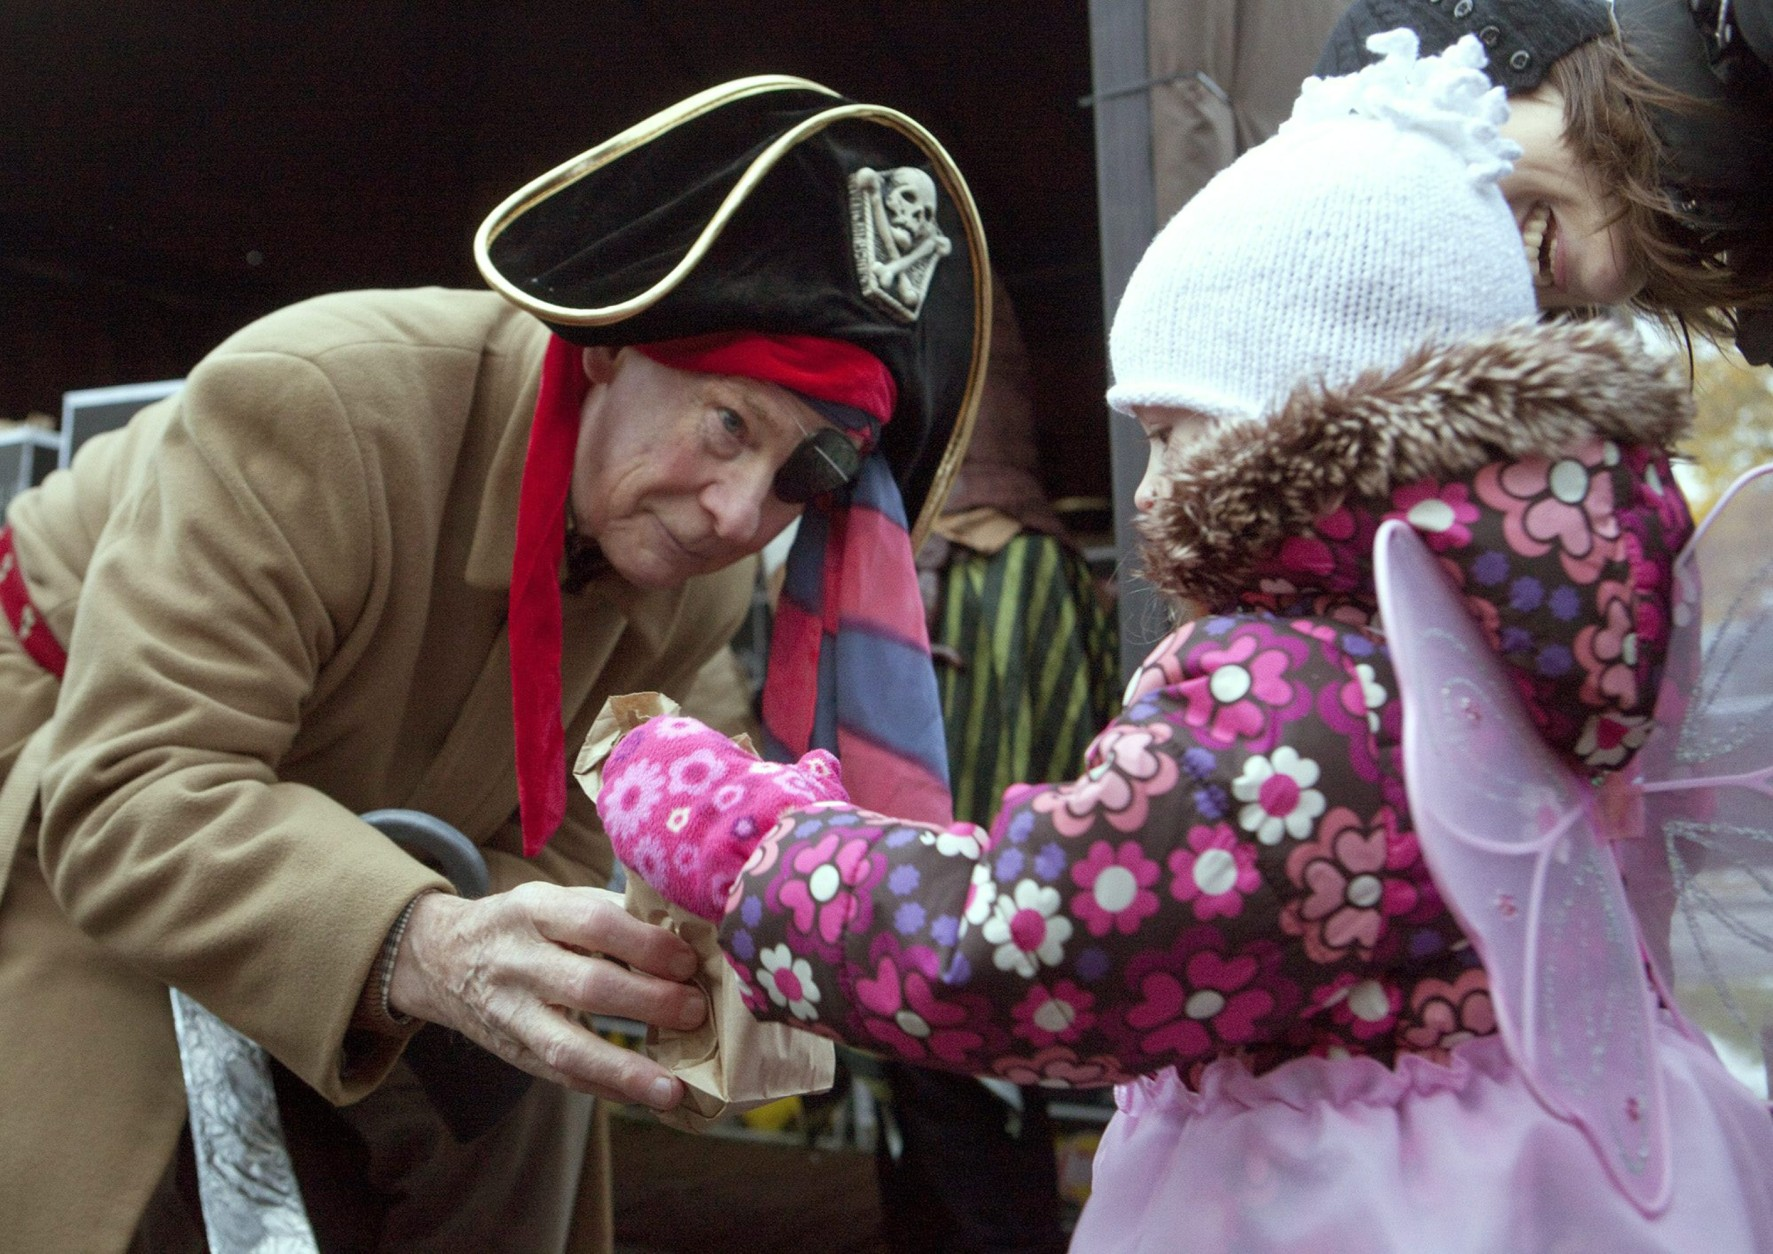 The Governor General of Canada David Johnston dressed as a pirate hands out candy to fairy Ella Statler at Rideau Hall on Halloween in Ottawa on Sunday, October 31, 2010. The Governor General's residence was open to the public for trick or treaters on Halloween  THE CANADIAN PRESS/Pawel Dwulit